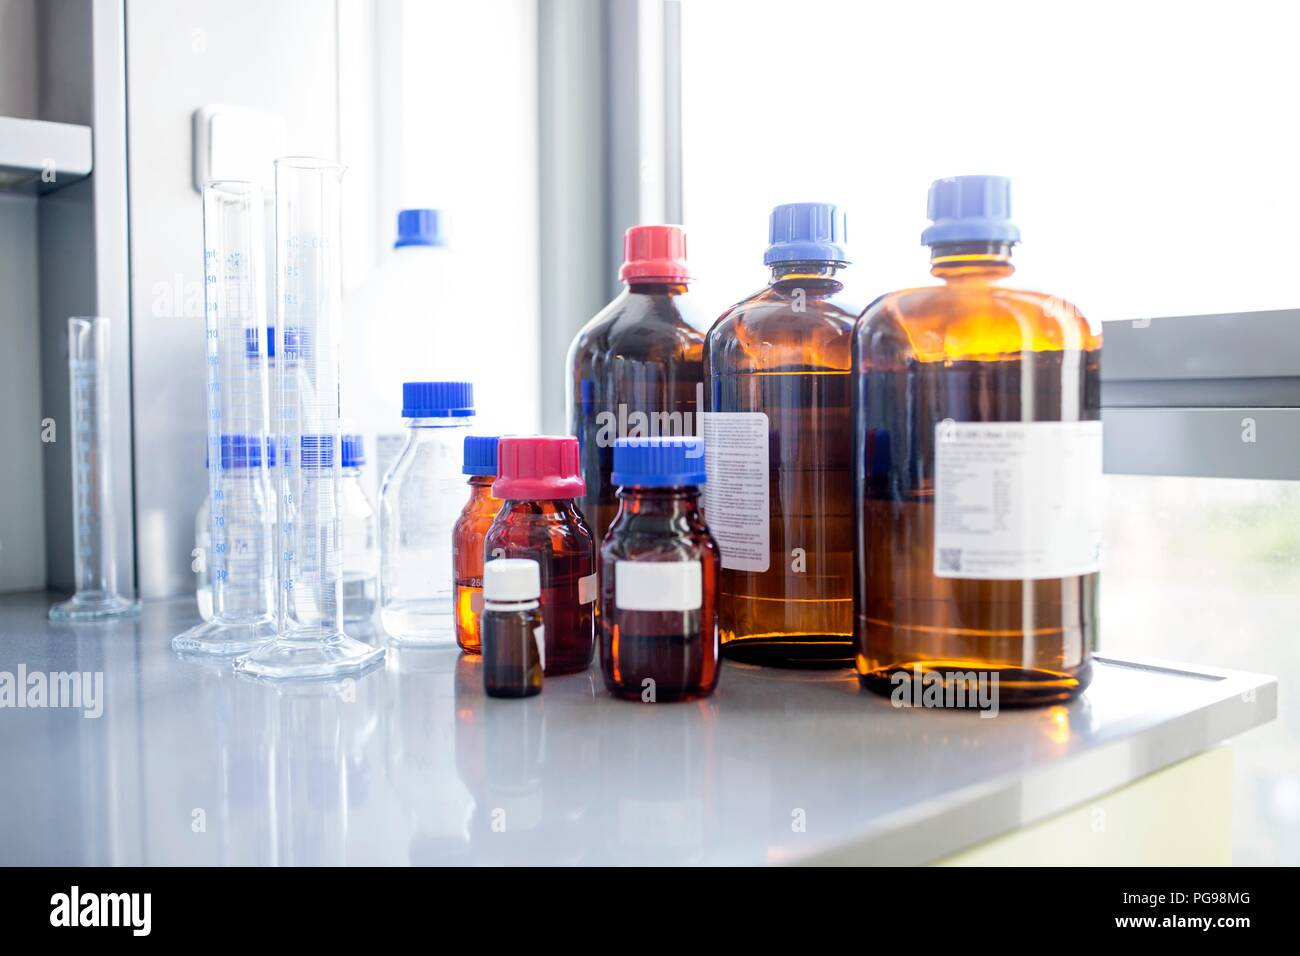 Laboratory solutions and glassware. - Stock Image